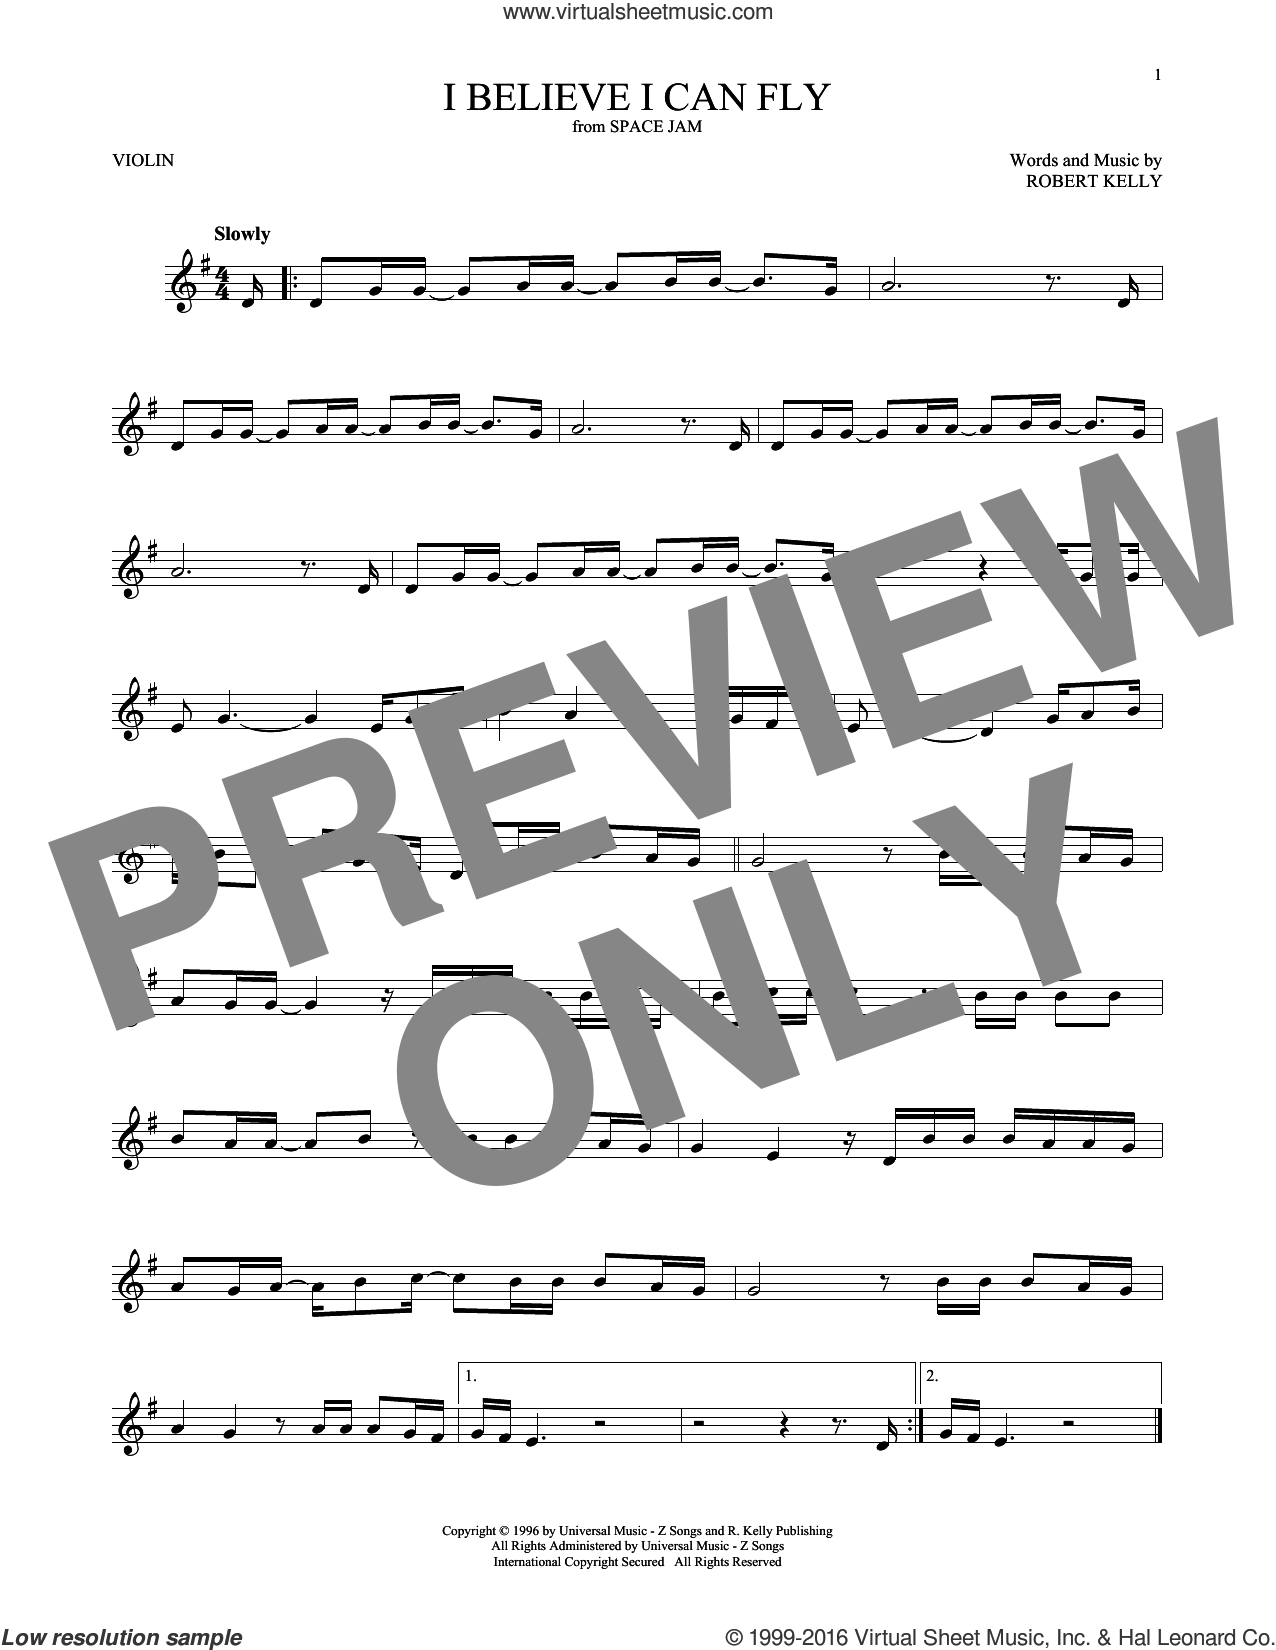 I Believe I Can Fly sheet music for violin solo by Robert Kelly and Jermaine Paul, intermediate skill level